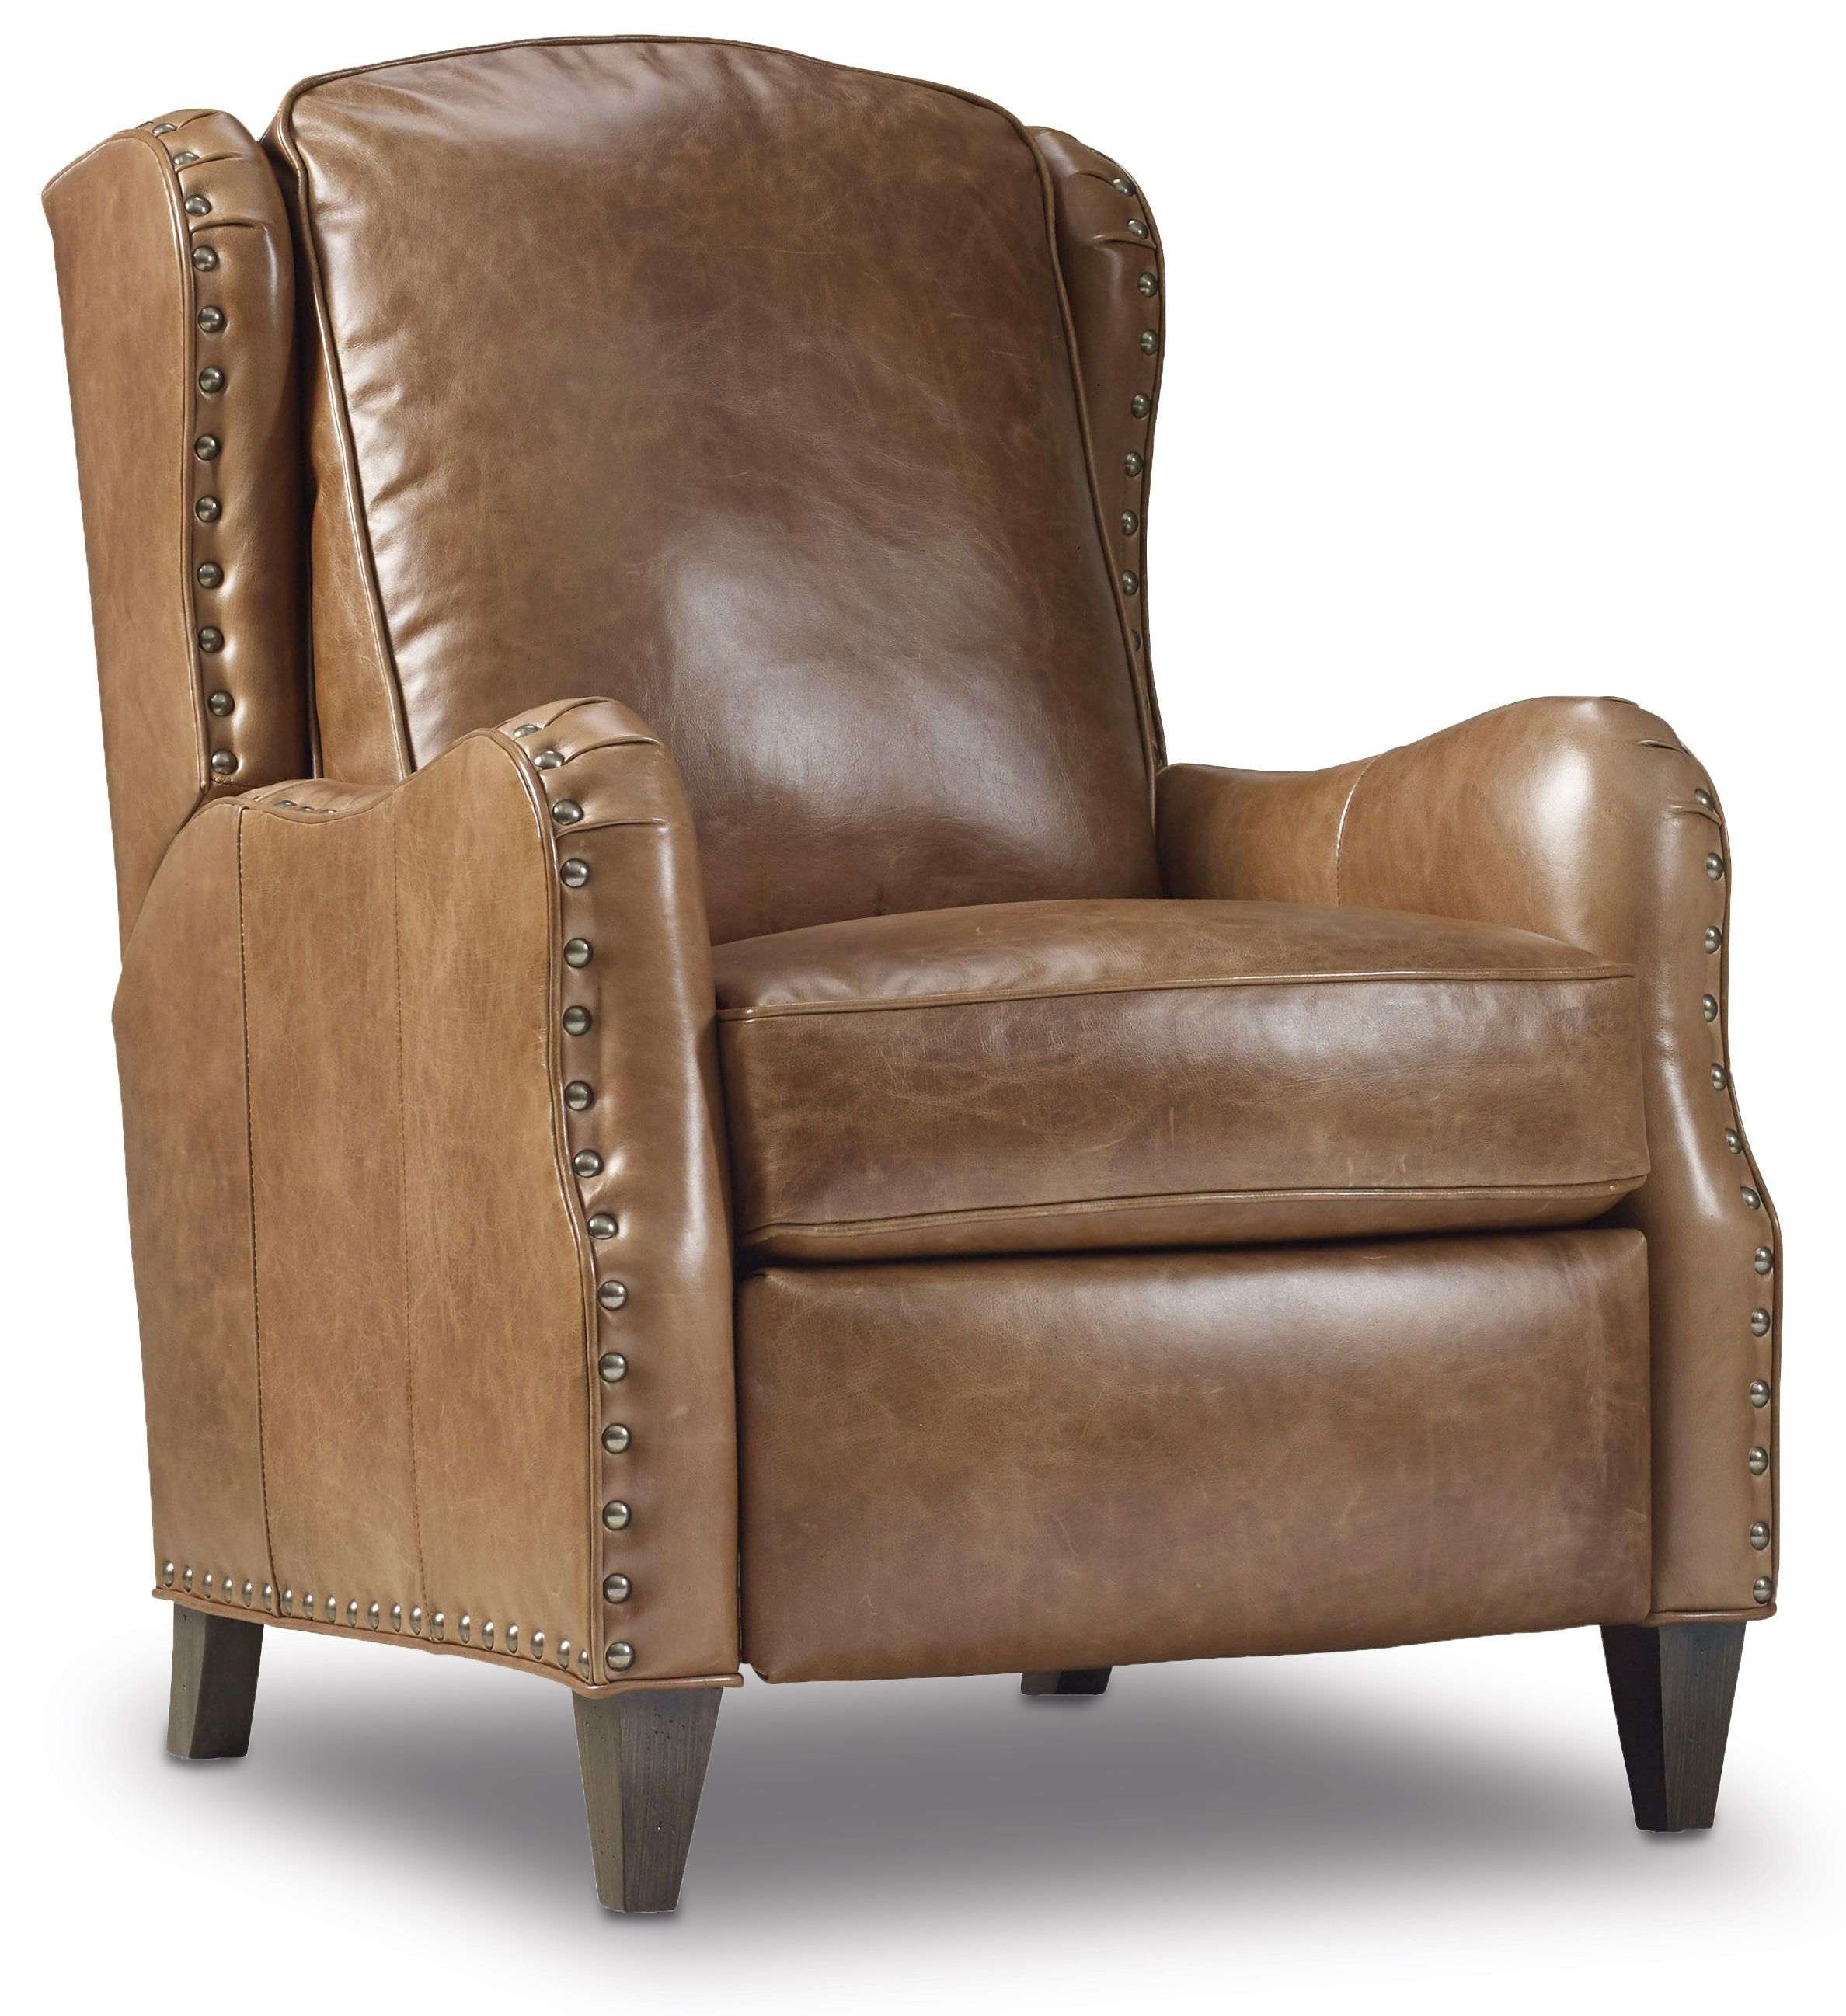 Bradington Young Living Room Sebastian Reclining Chair 3019 Hickory Nc